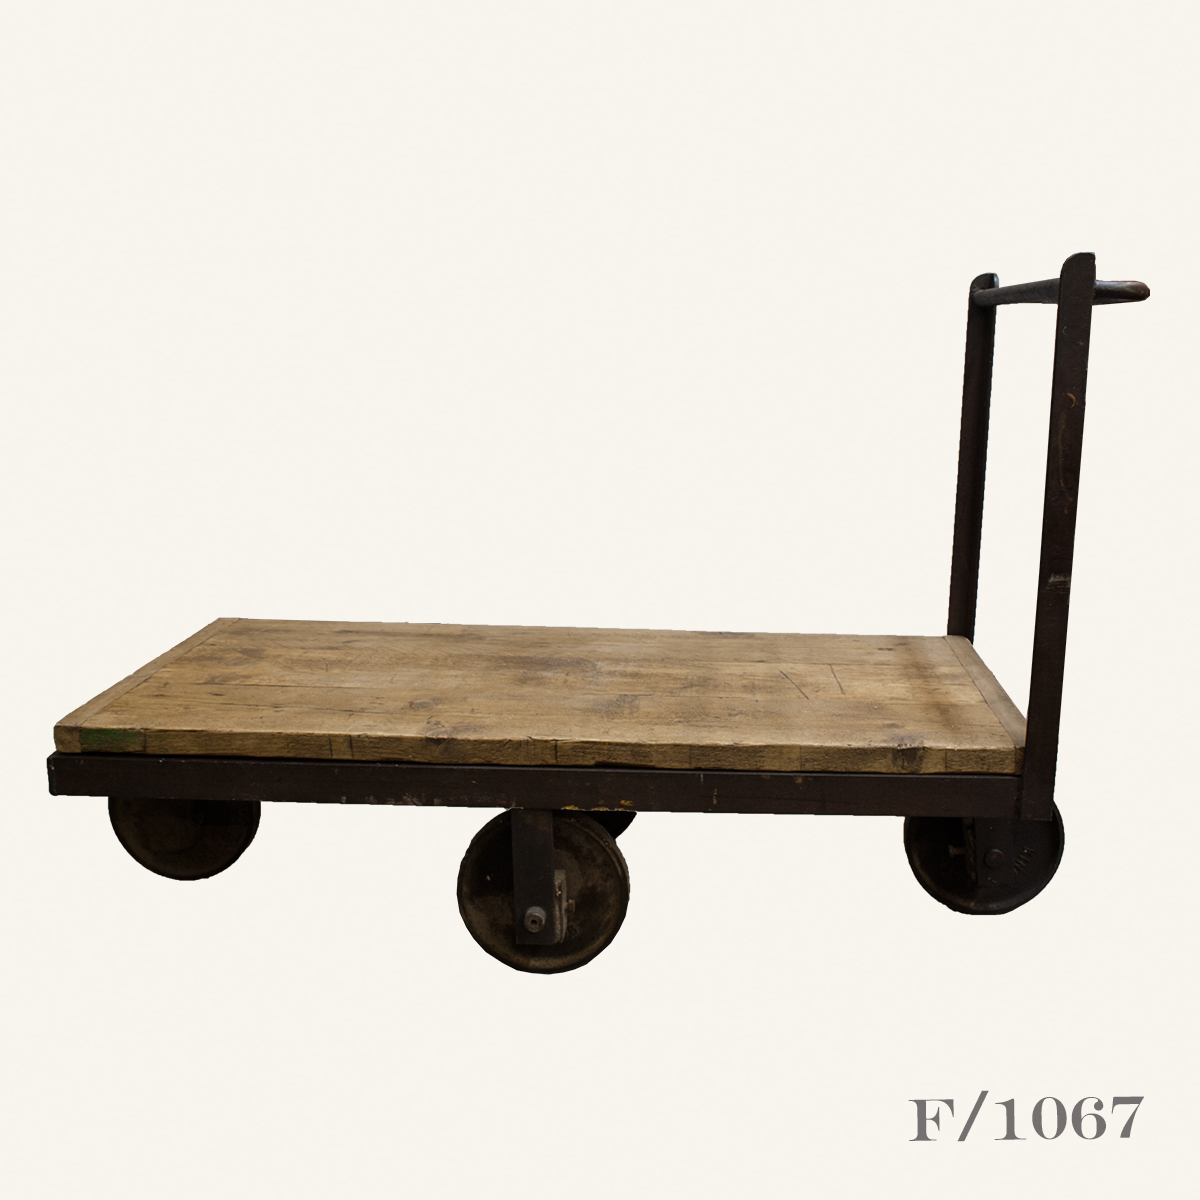 Antique Industrial Cart Coffee Table: Vintage Industrial Factory Trolley Cart Coffee Table